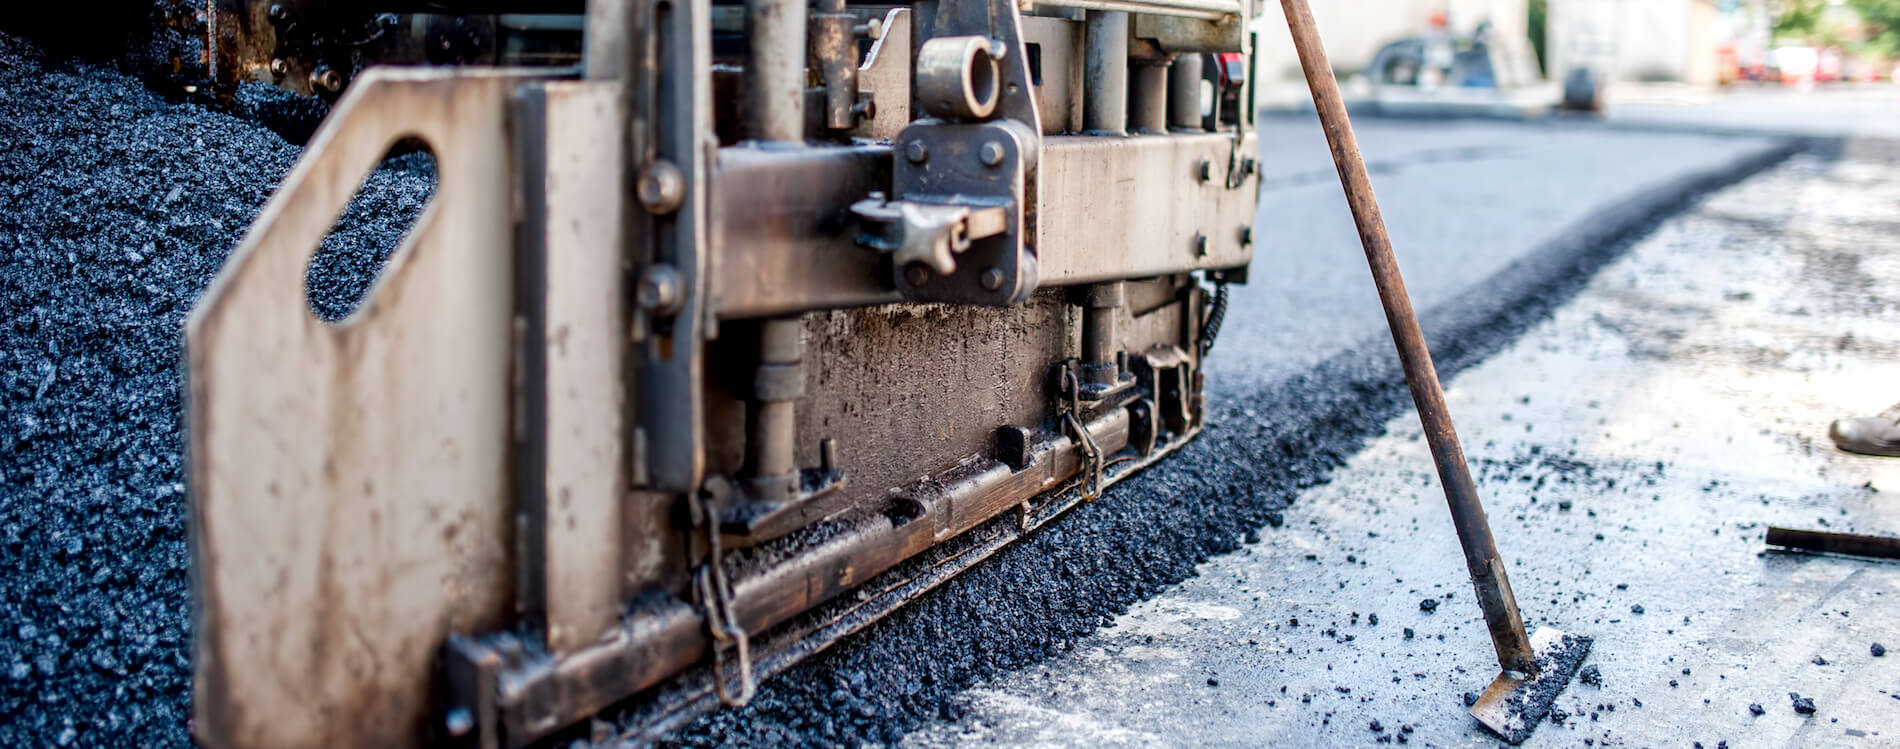 close-up-of-asphalting-machinery-and-tools-PMFM6RD (1)